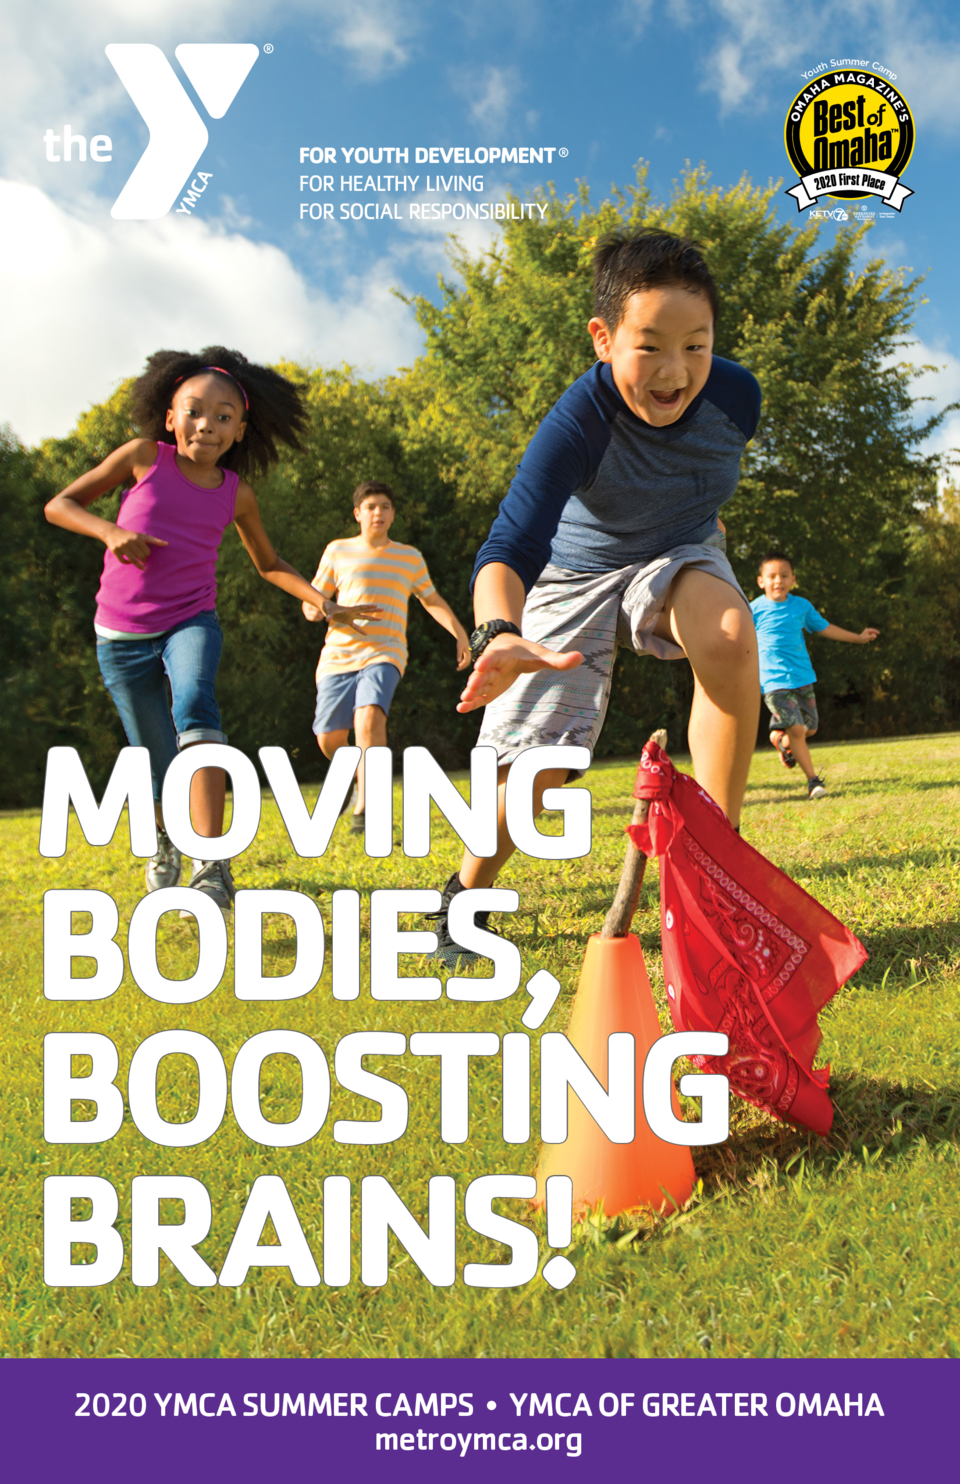 Summer Ca mp uth Yo  MOVING BODIES, BOOSTING BRAINS  2020 YMCA SUMMER CAMPS     YMCA OF GREATER OMAHA metroymca.org